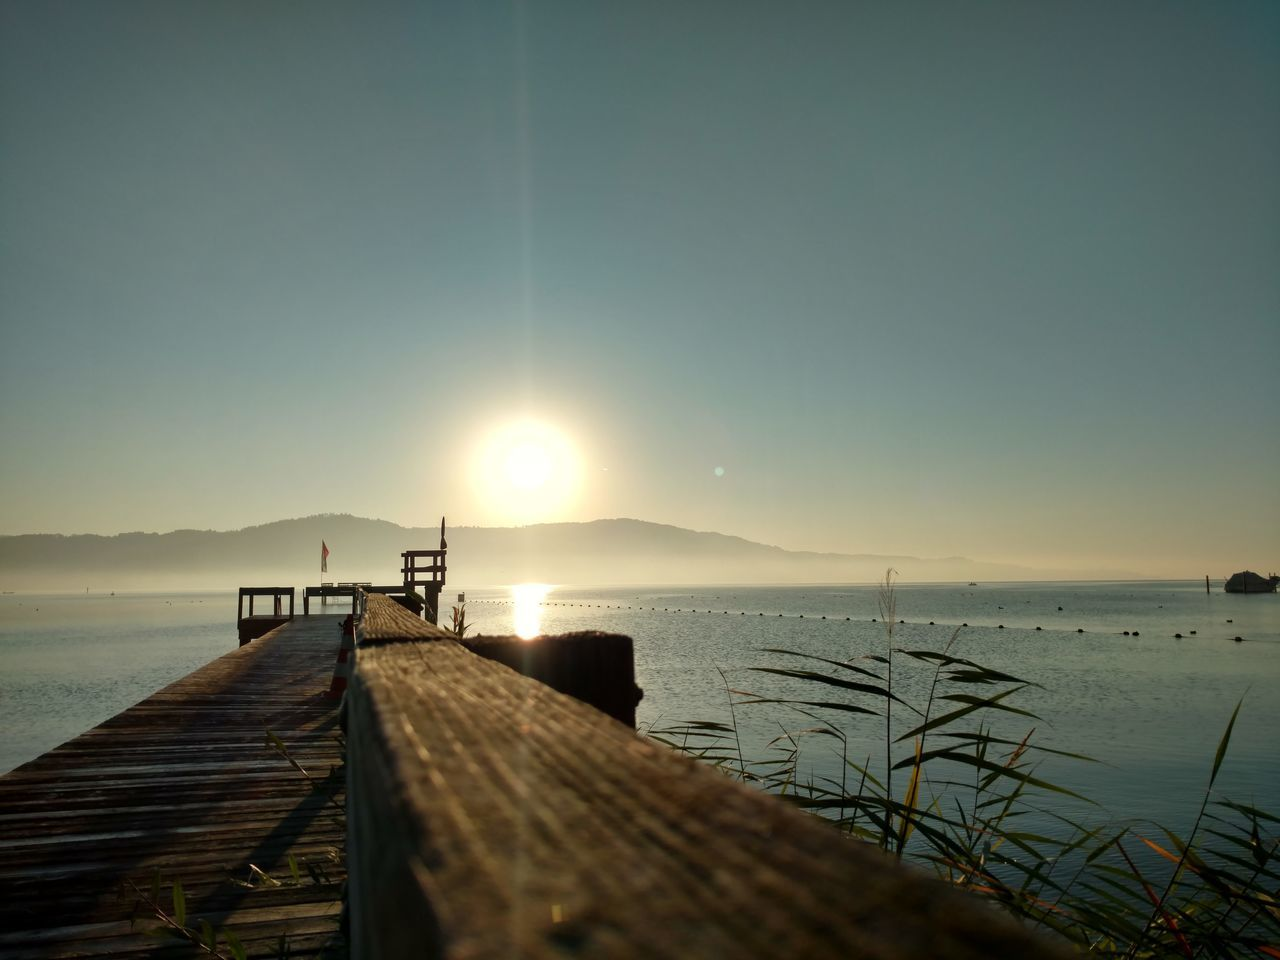 Water Sea Sun Pier Tranquil Scene Tranquility Lake Scenics Reflection Sunbeam Nature Beauty In Nature Day Outdoors Calm Bright Standing Water No People Majestic Remote